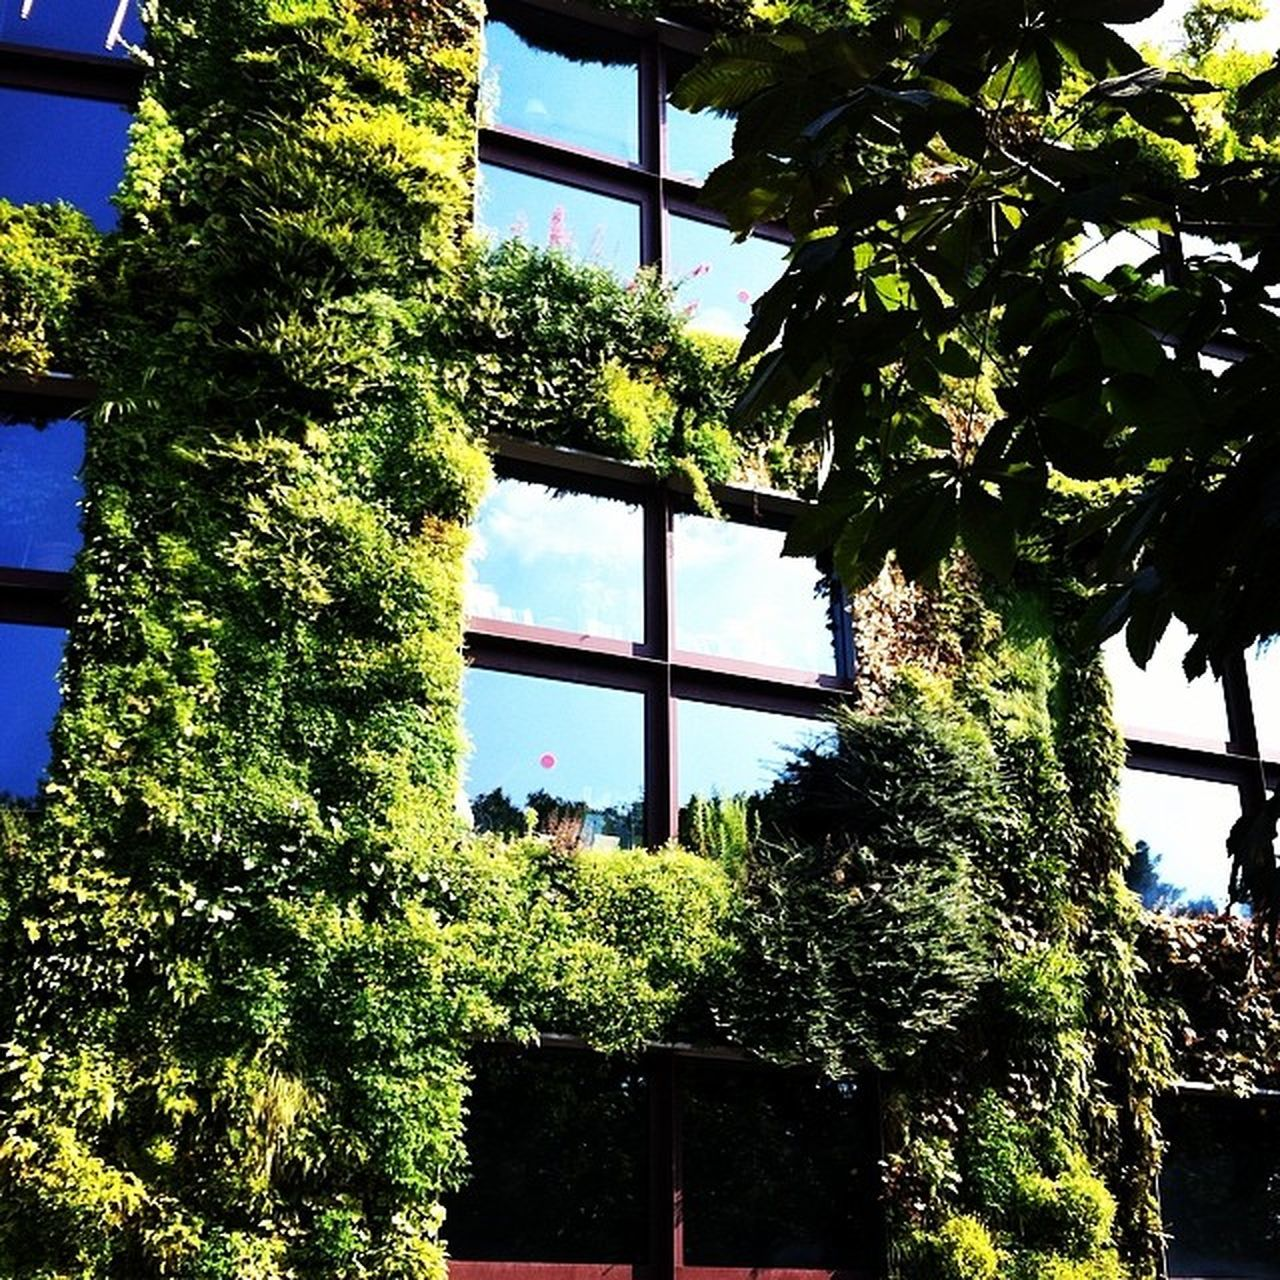 tree, growth, window, low angle view, plant, ivy, green color, day, nature, no people, built structure, architecture, branch, outdoors, leaf, sky, beauty in nature, building exterior, close-up